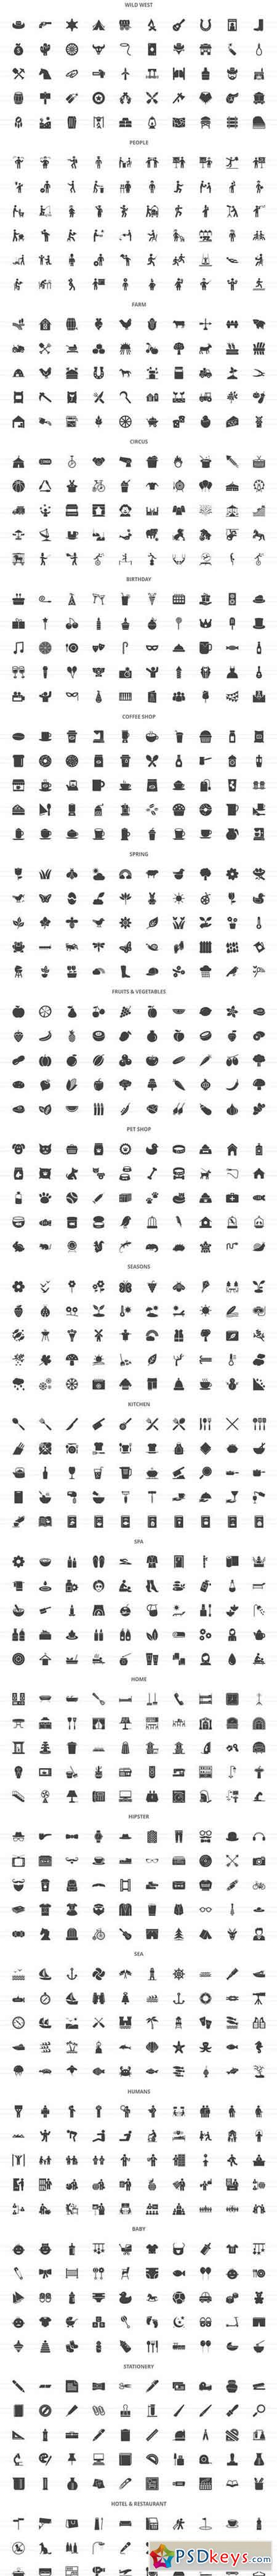 2490 Nature & Lifestyle Glyph Icons 2041199